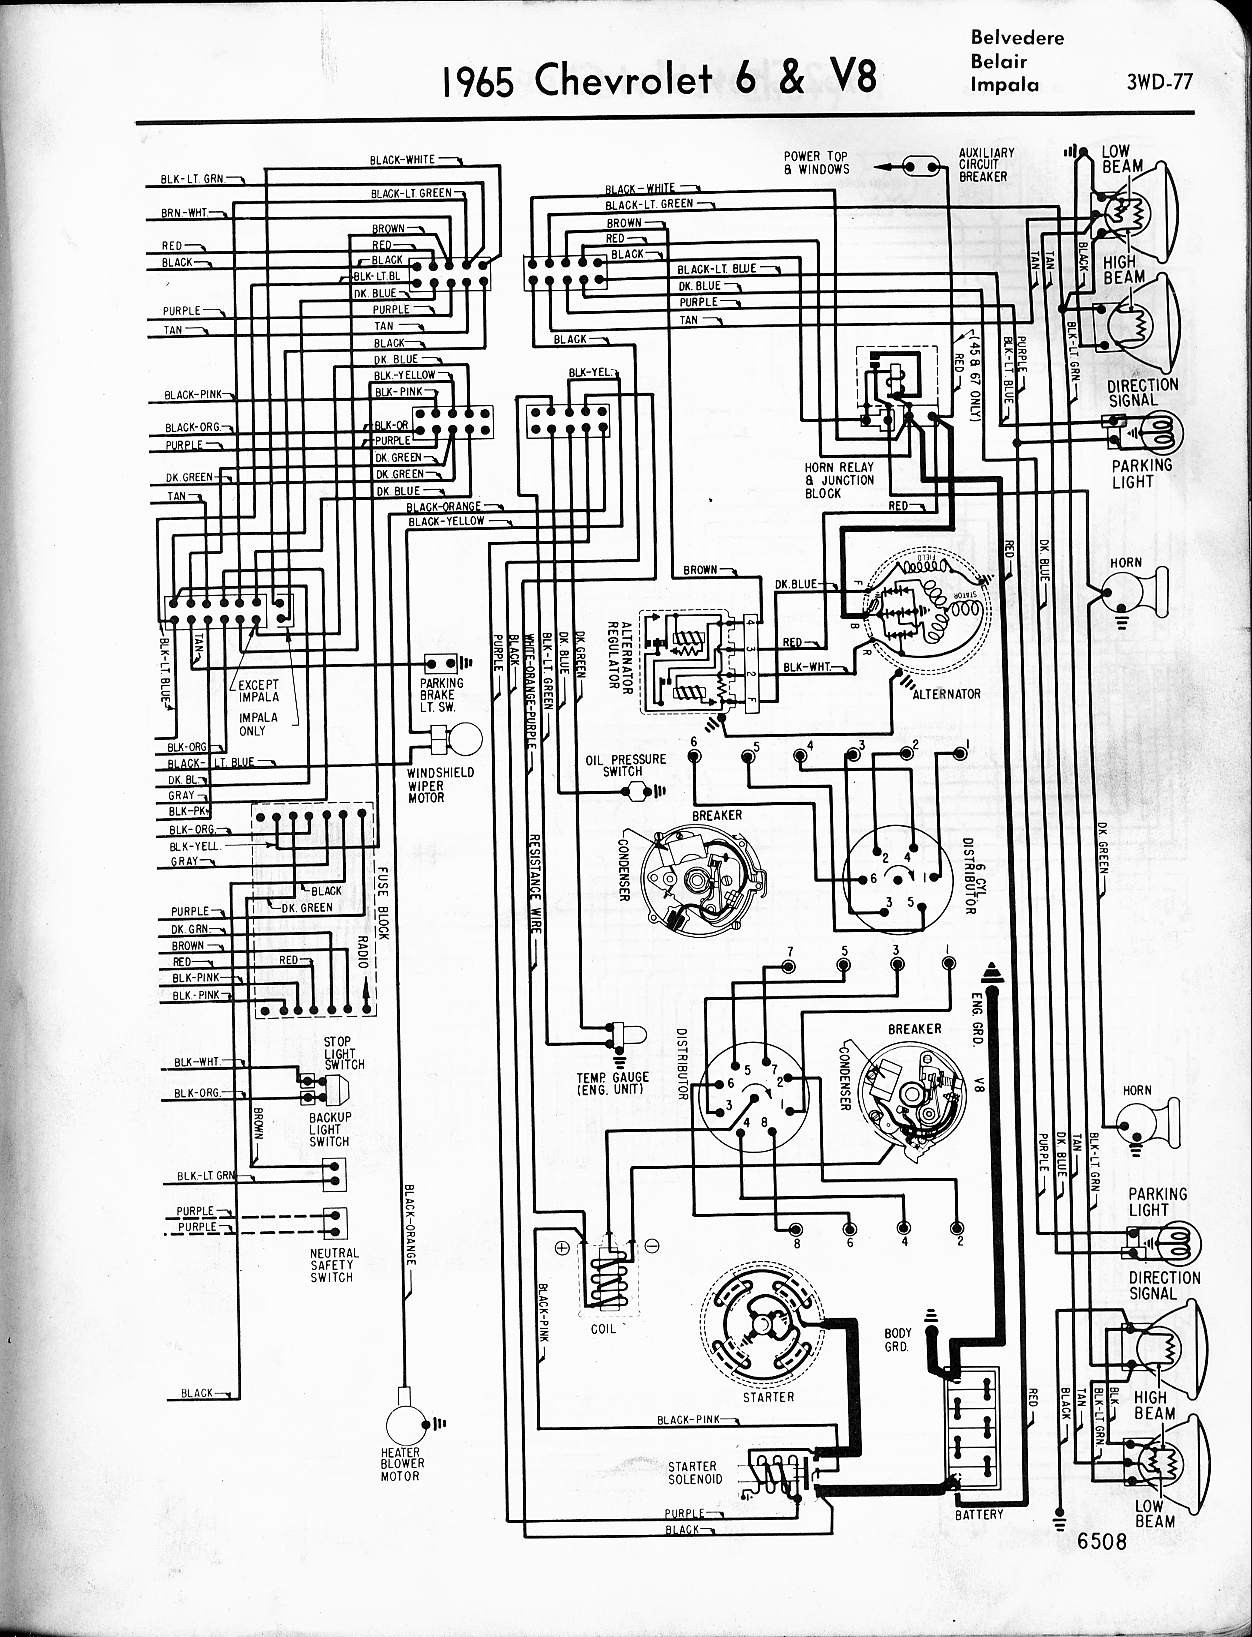 chevy malibu wiring diagram besides 1961 chevy impala wiring diagram rh  onzegroup co 08 Chevy Impala Headlight Fuse 2000 Chevy Impala Fuse Box  Diagram